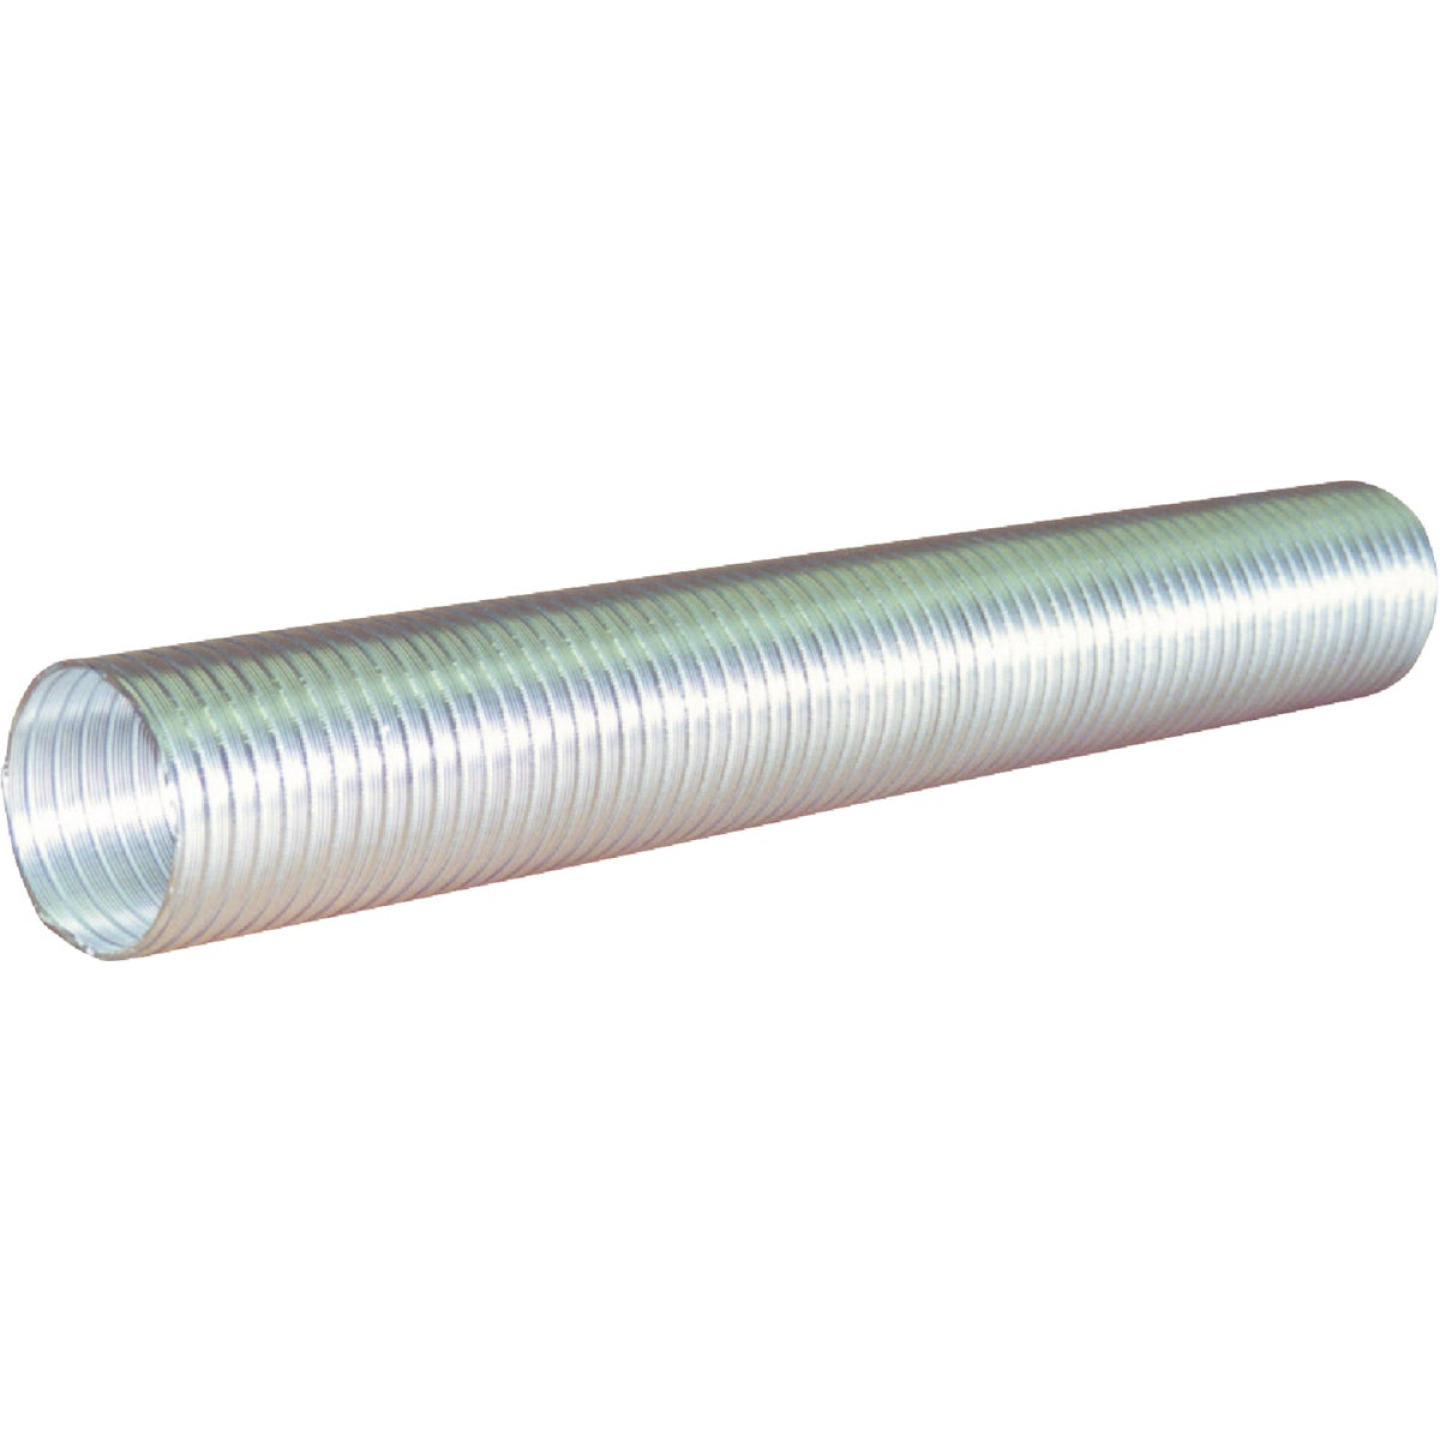 Dundas Jafine 3 In. x 8 Ft. Aluminum Semi-Rigid Dryer Duct Image 1